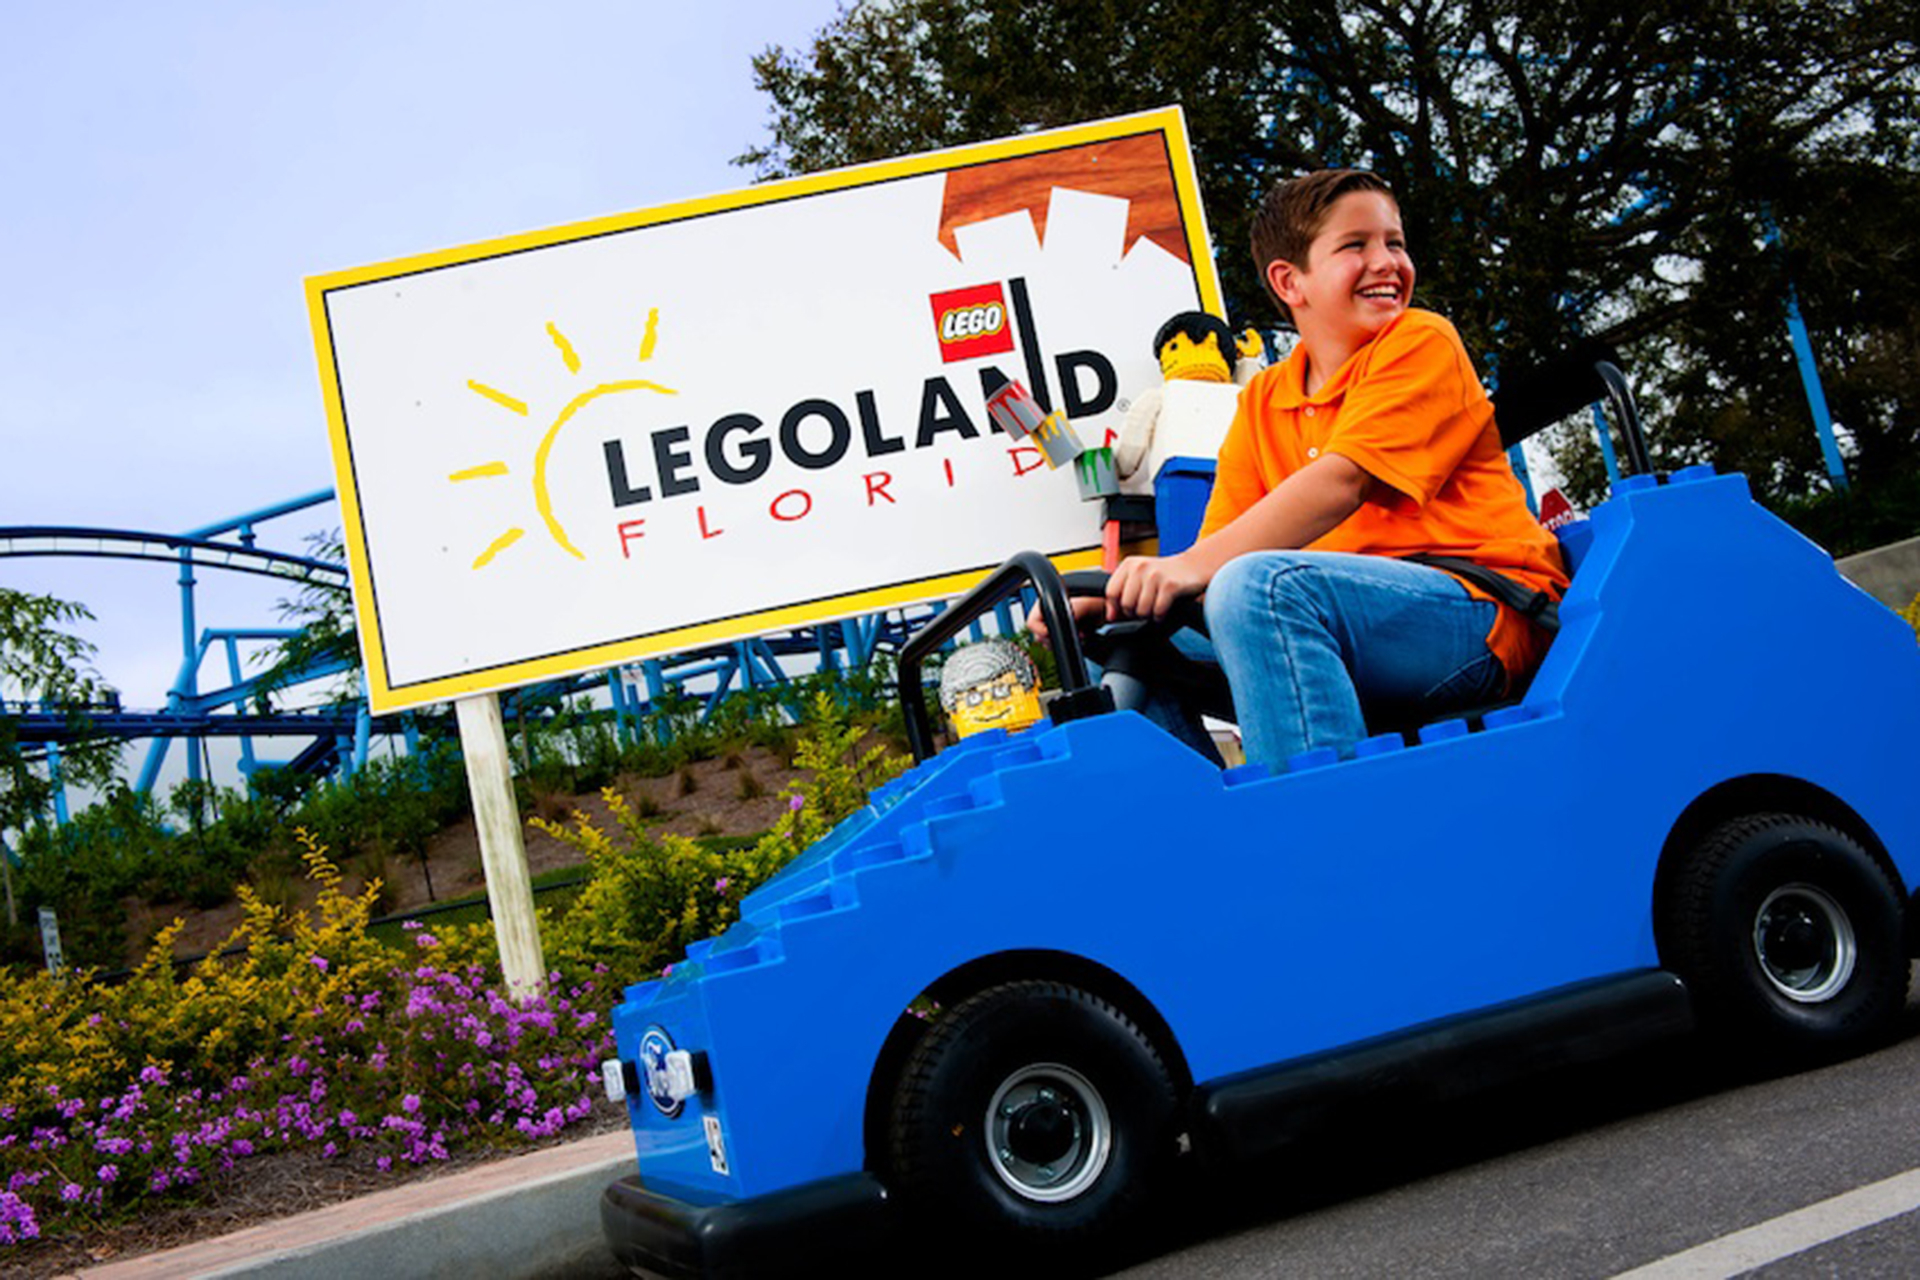 Ready To Wow Your Mini Figs With A Legoland Florida Visit After Full Day At The Theme Park You Ll Need Place Chill In Evenings